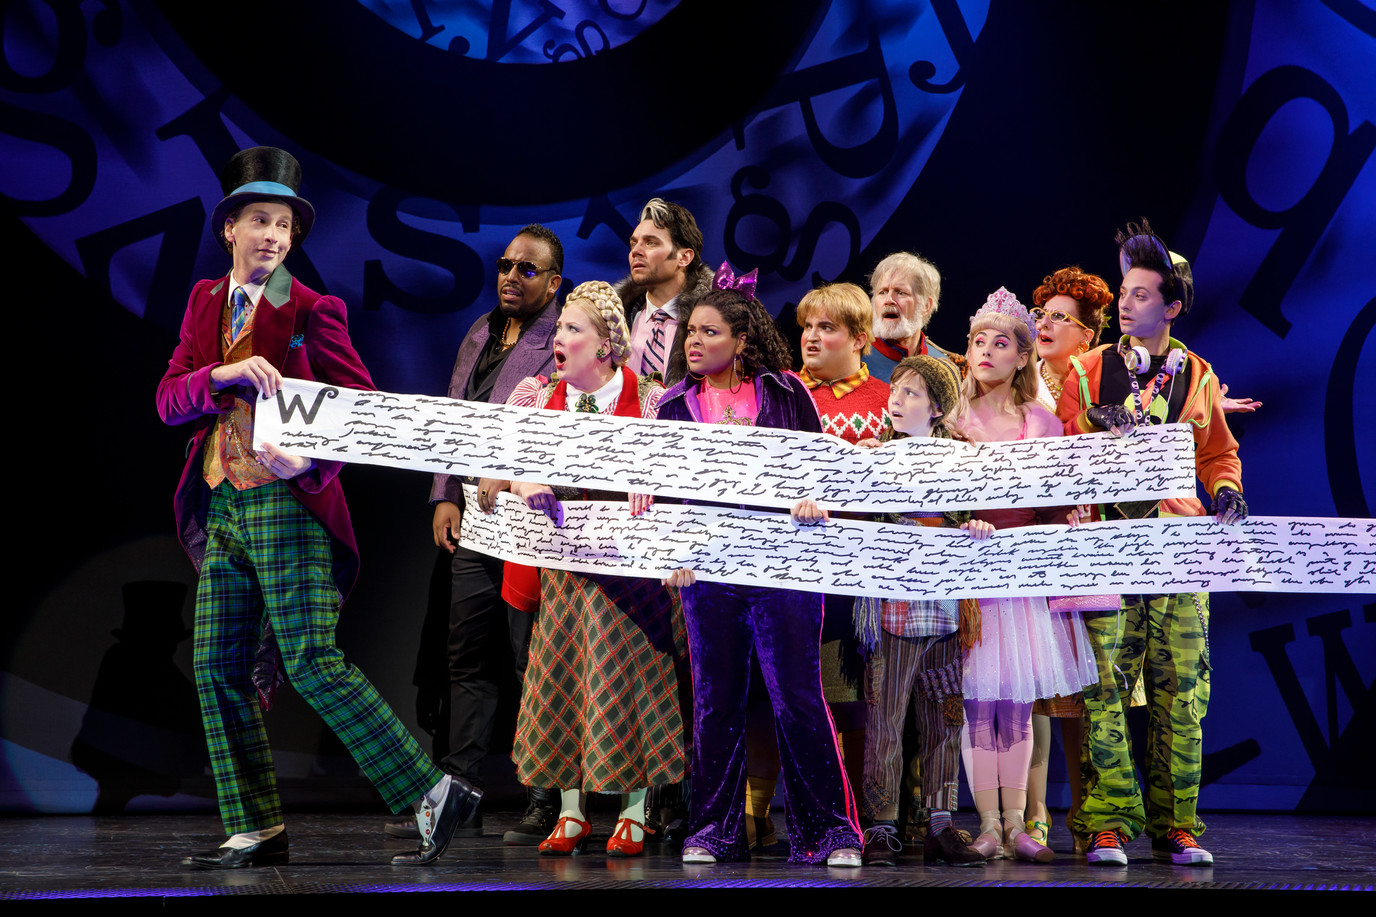 The cast of Roald Dahl's CHARLIE AND THE CHOCOLATE FACTORY.